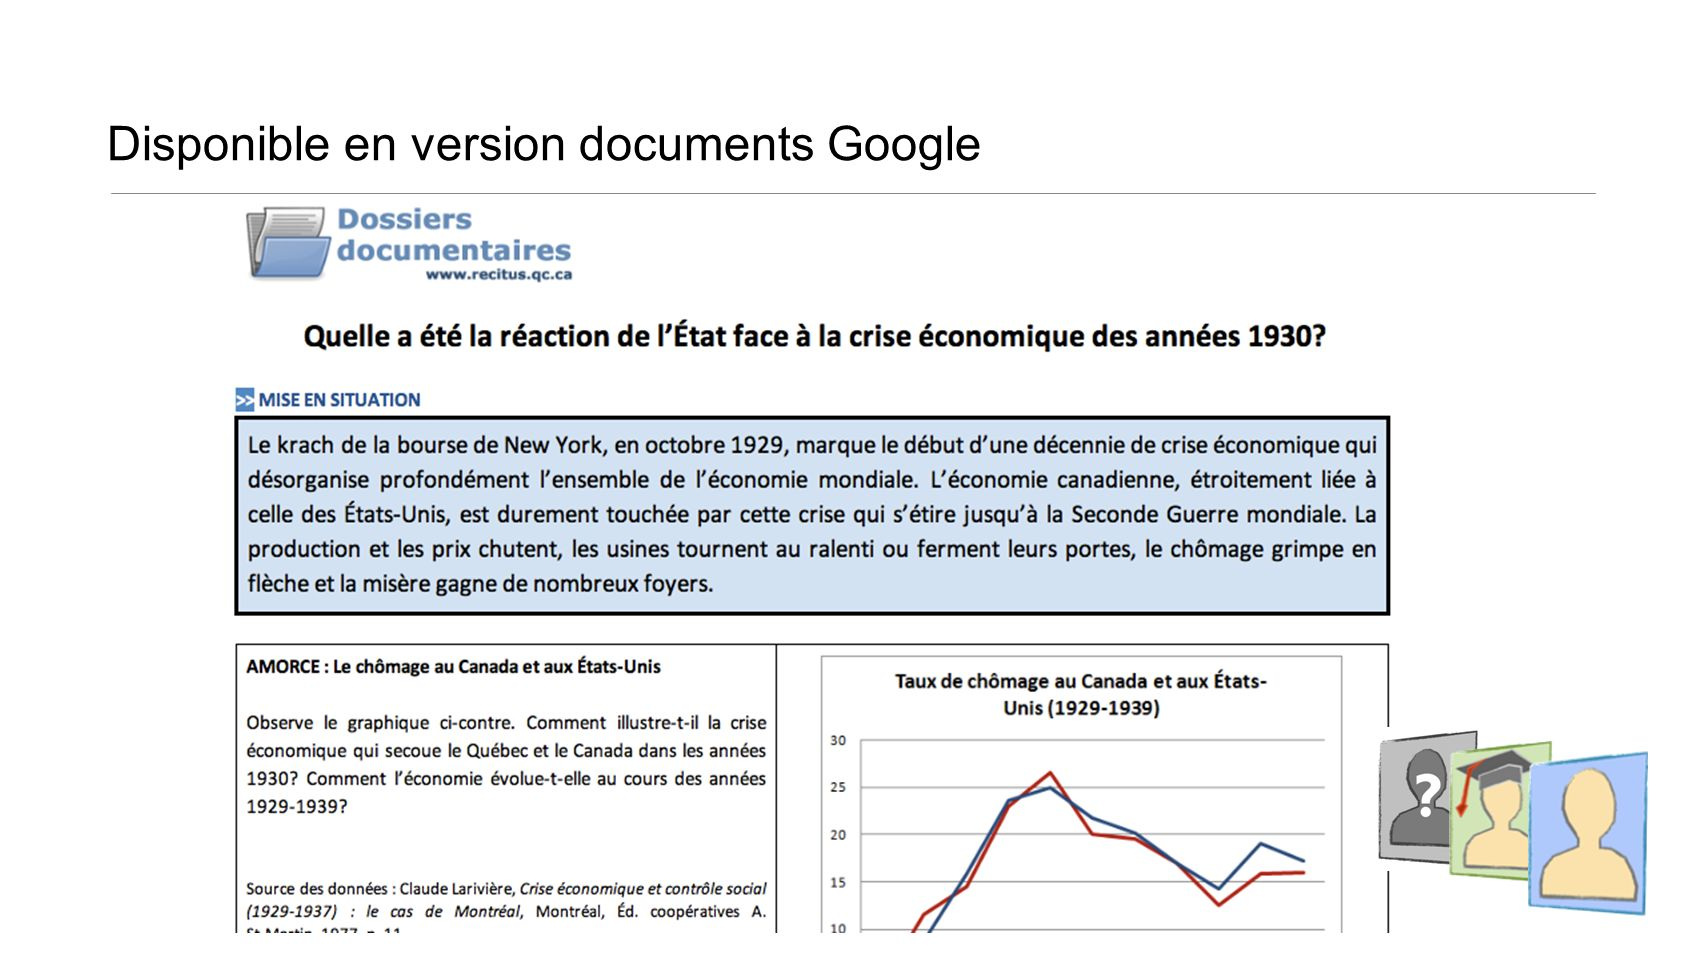 Disponible en version documents Google